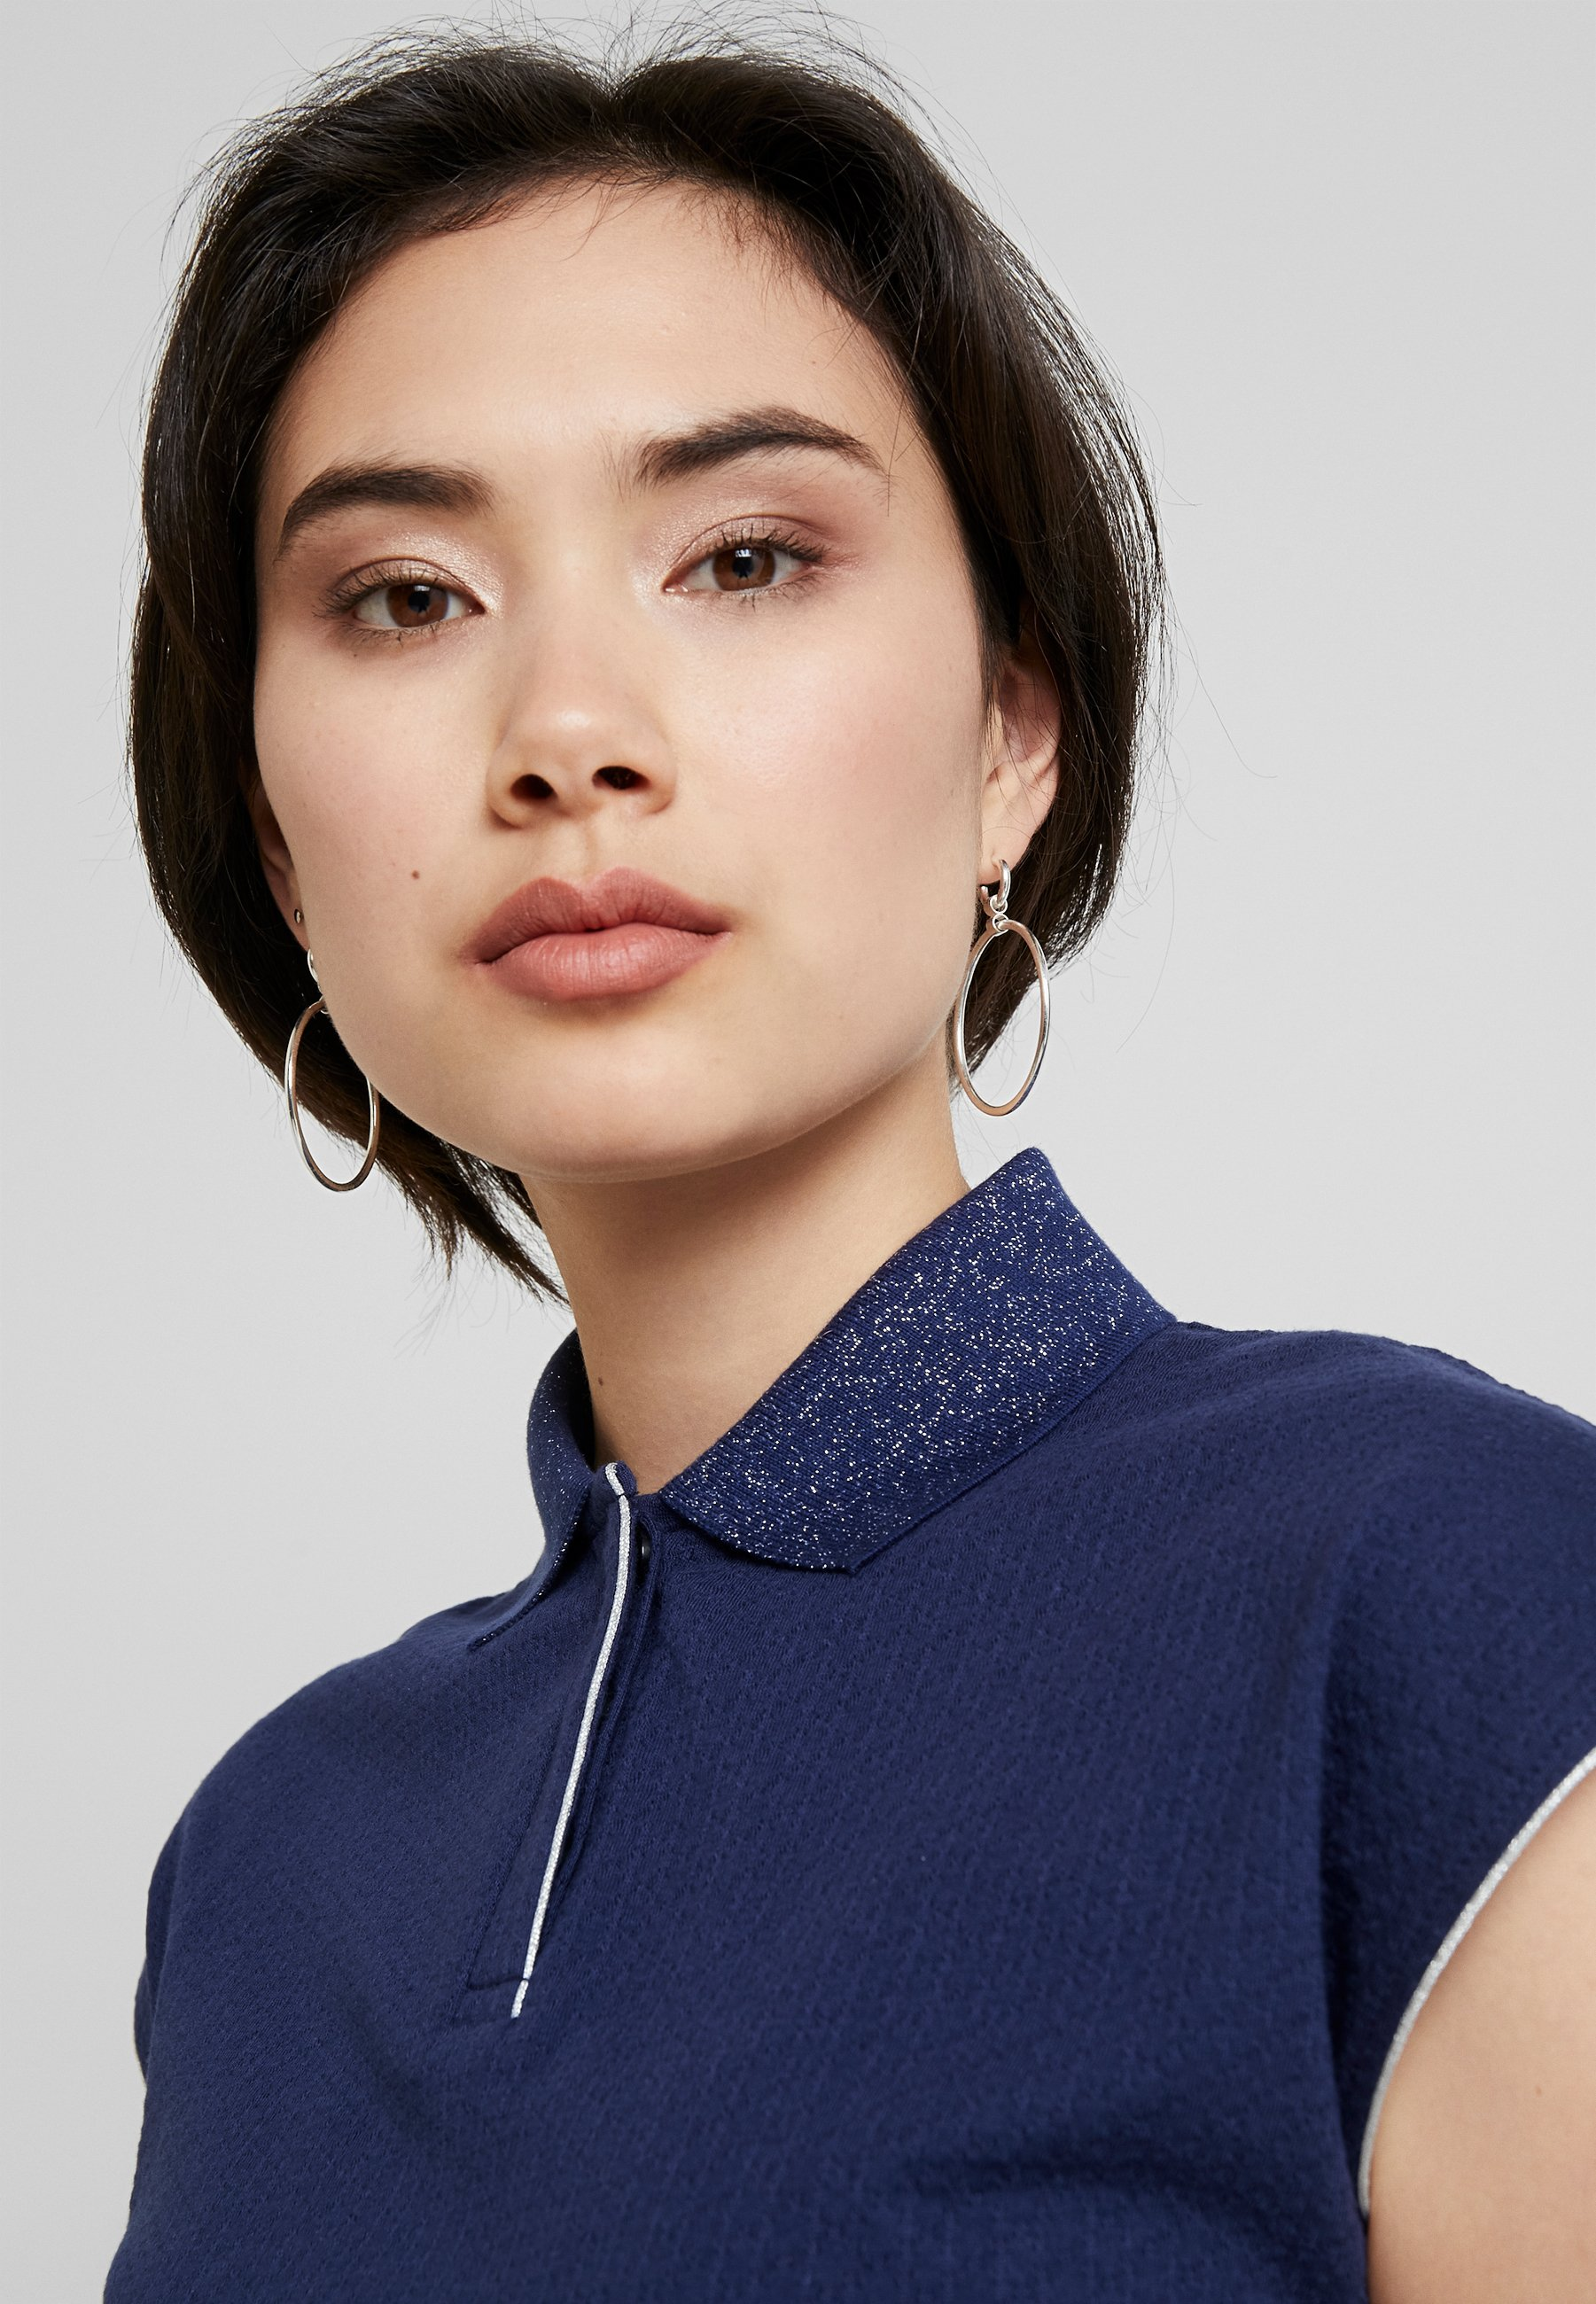 shirt Field Stampa Con T Anna Navy eH2YbWED9I